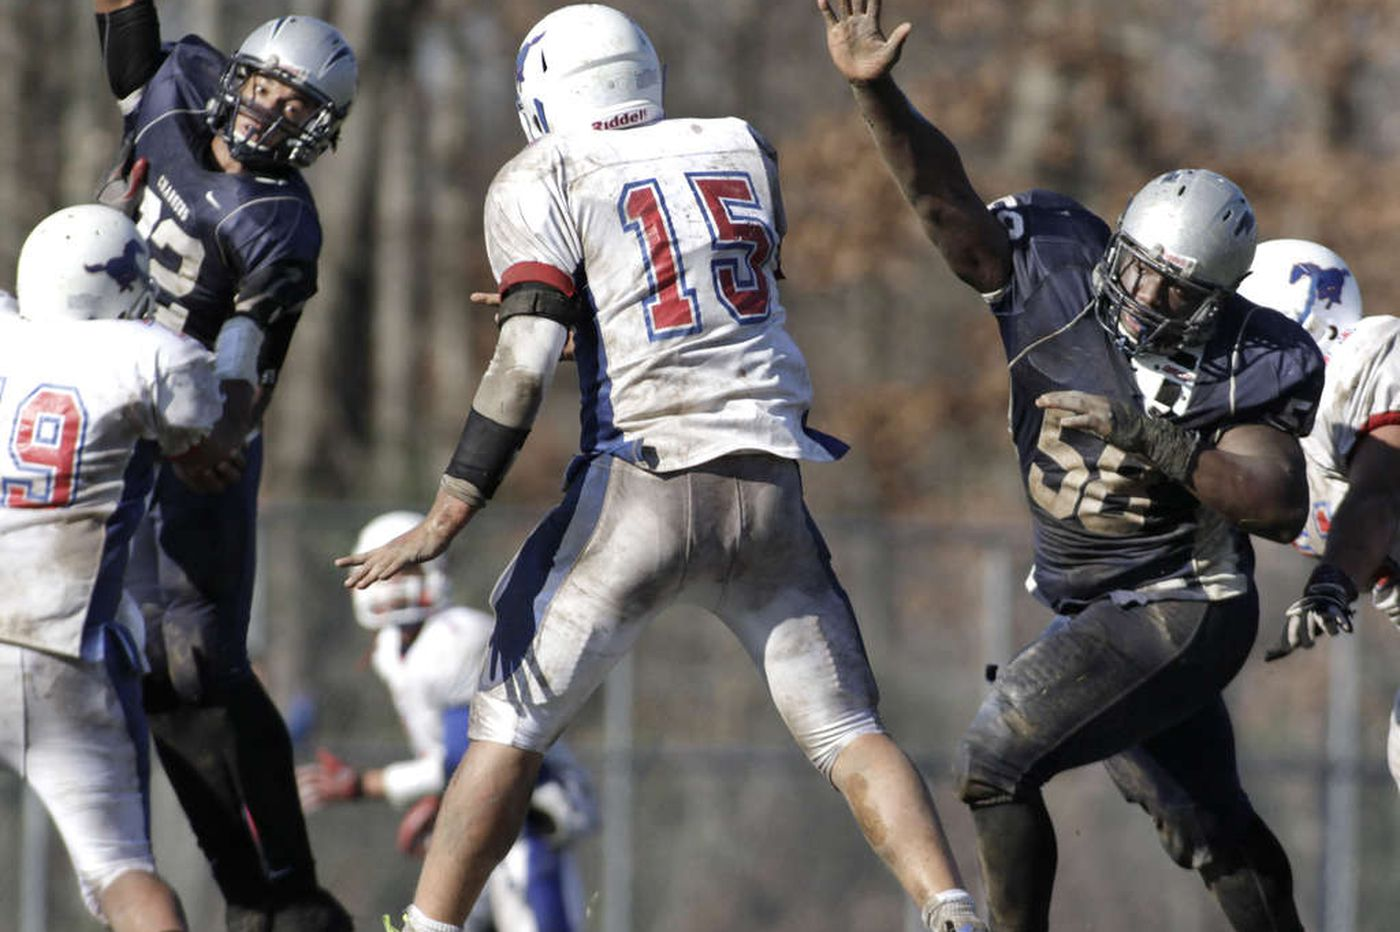 Smothering defenses carried 2 unbeatens